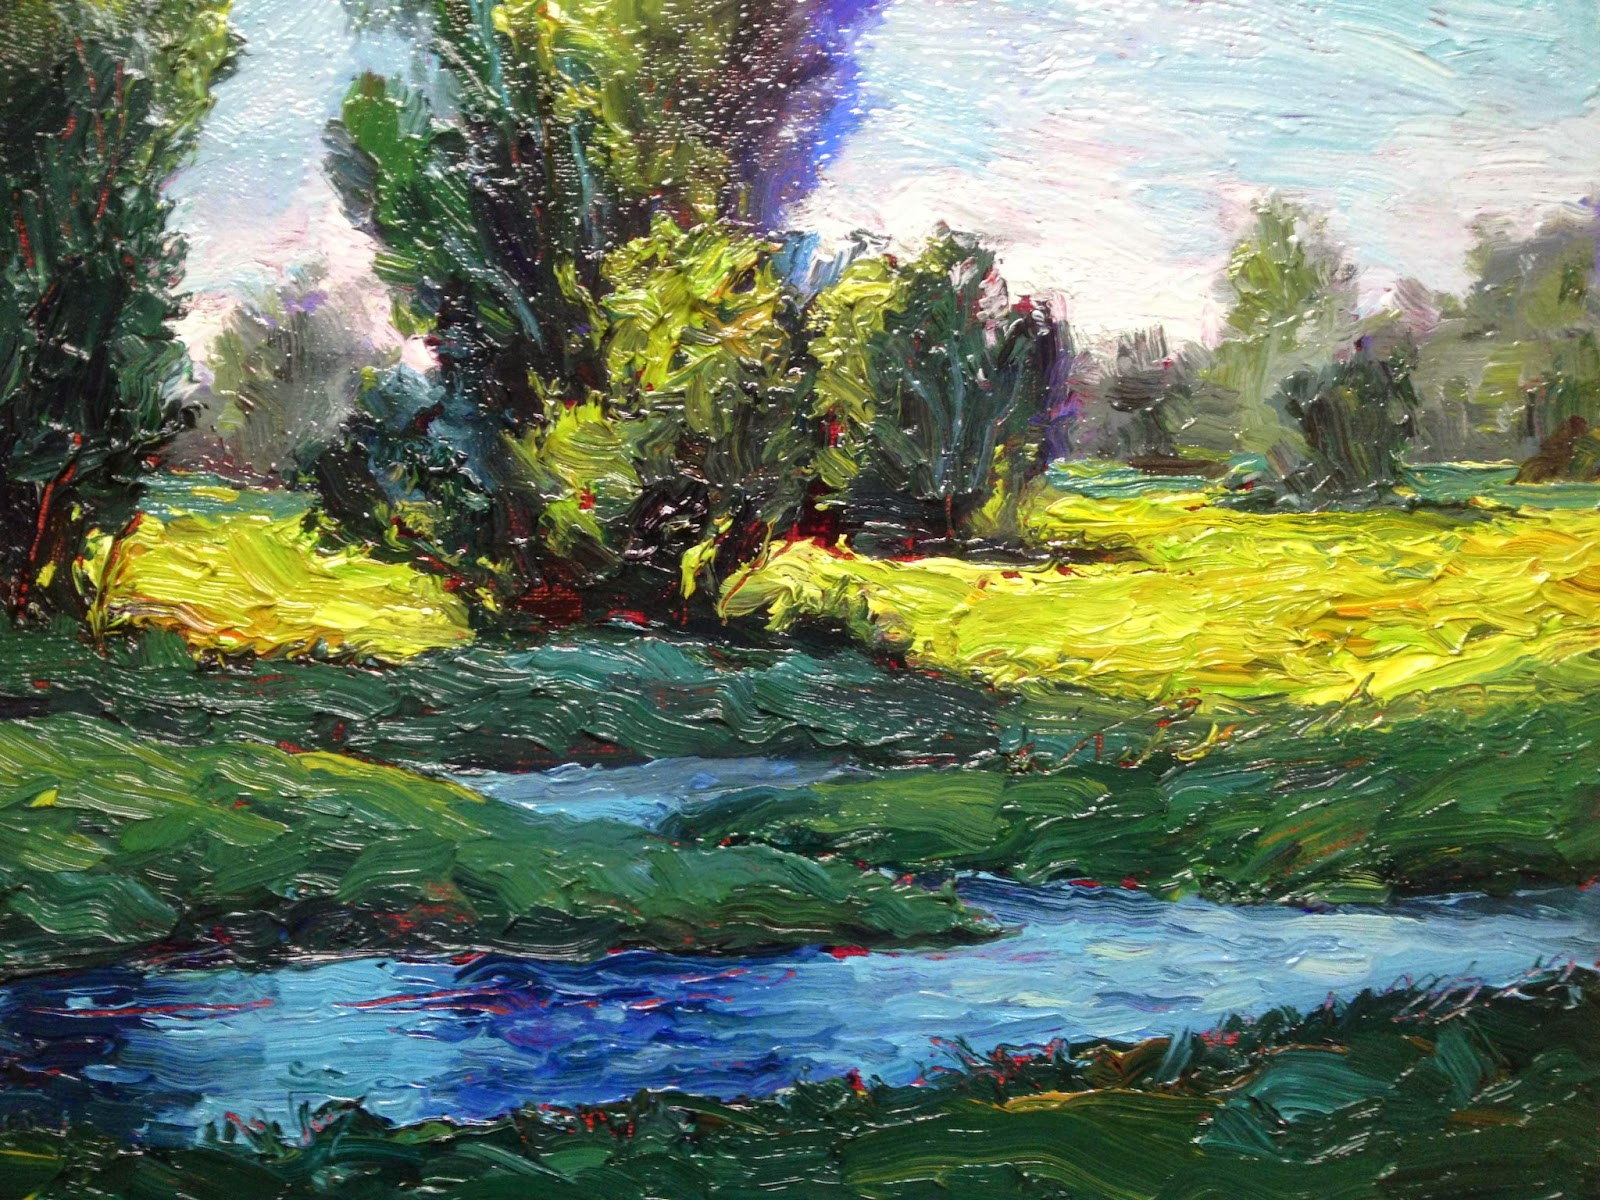 BRAD TEARE 127 Painting A Small Landscape